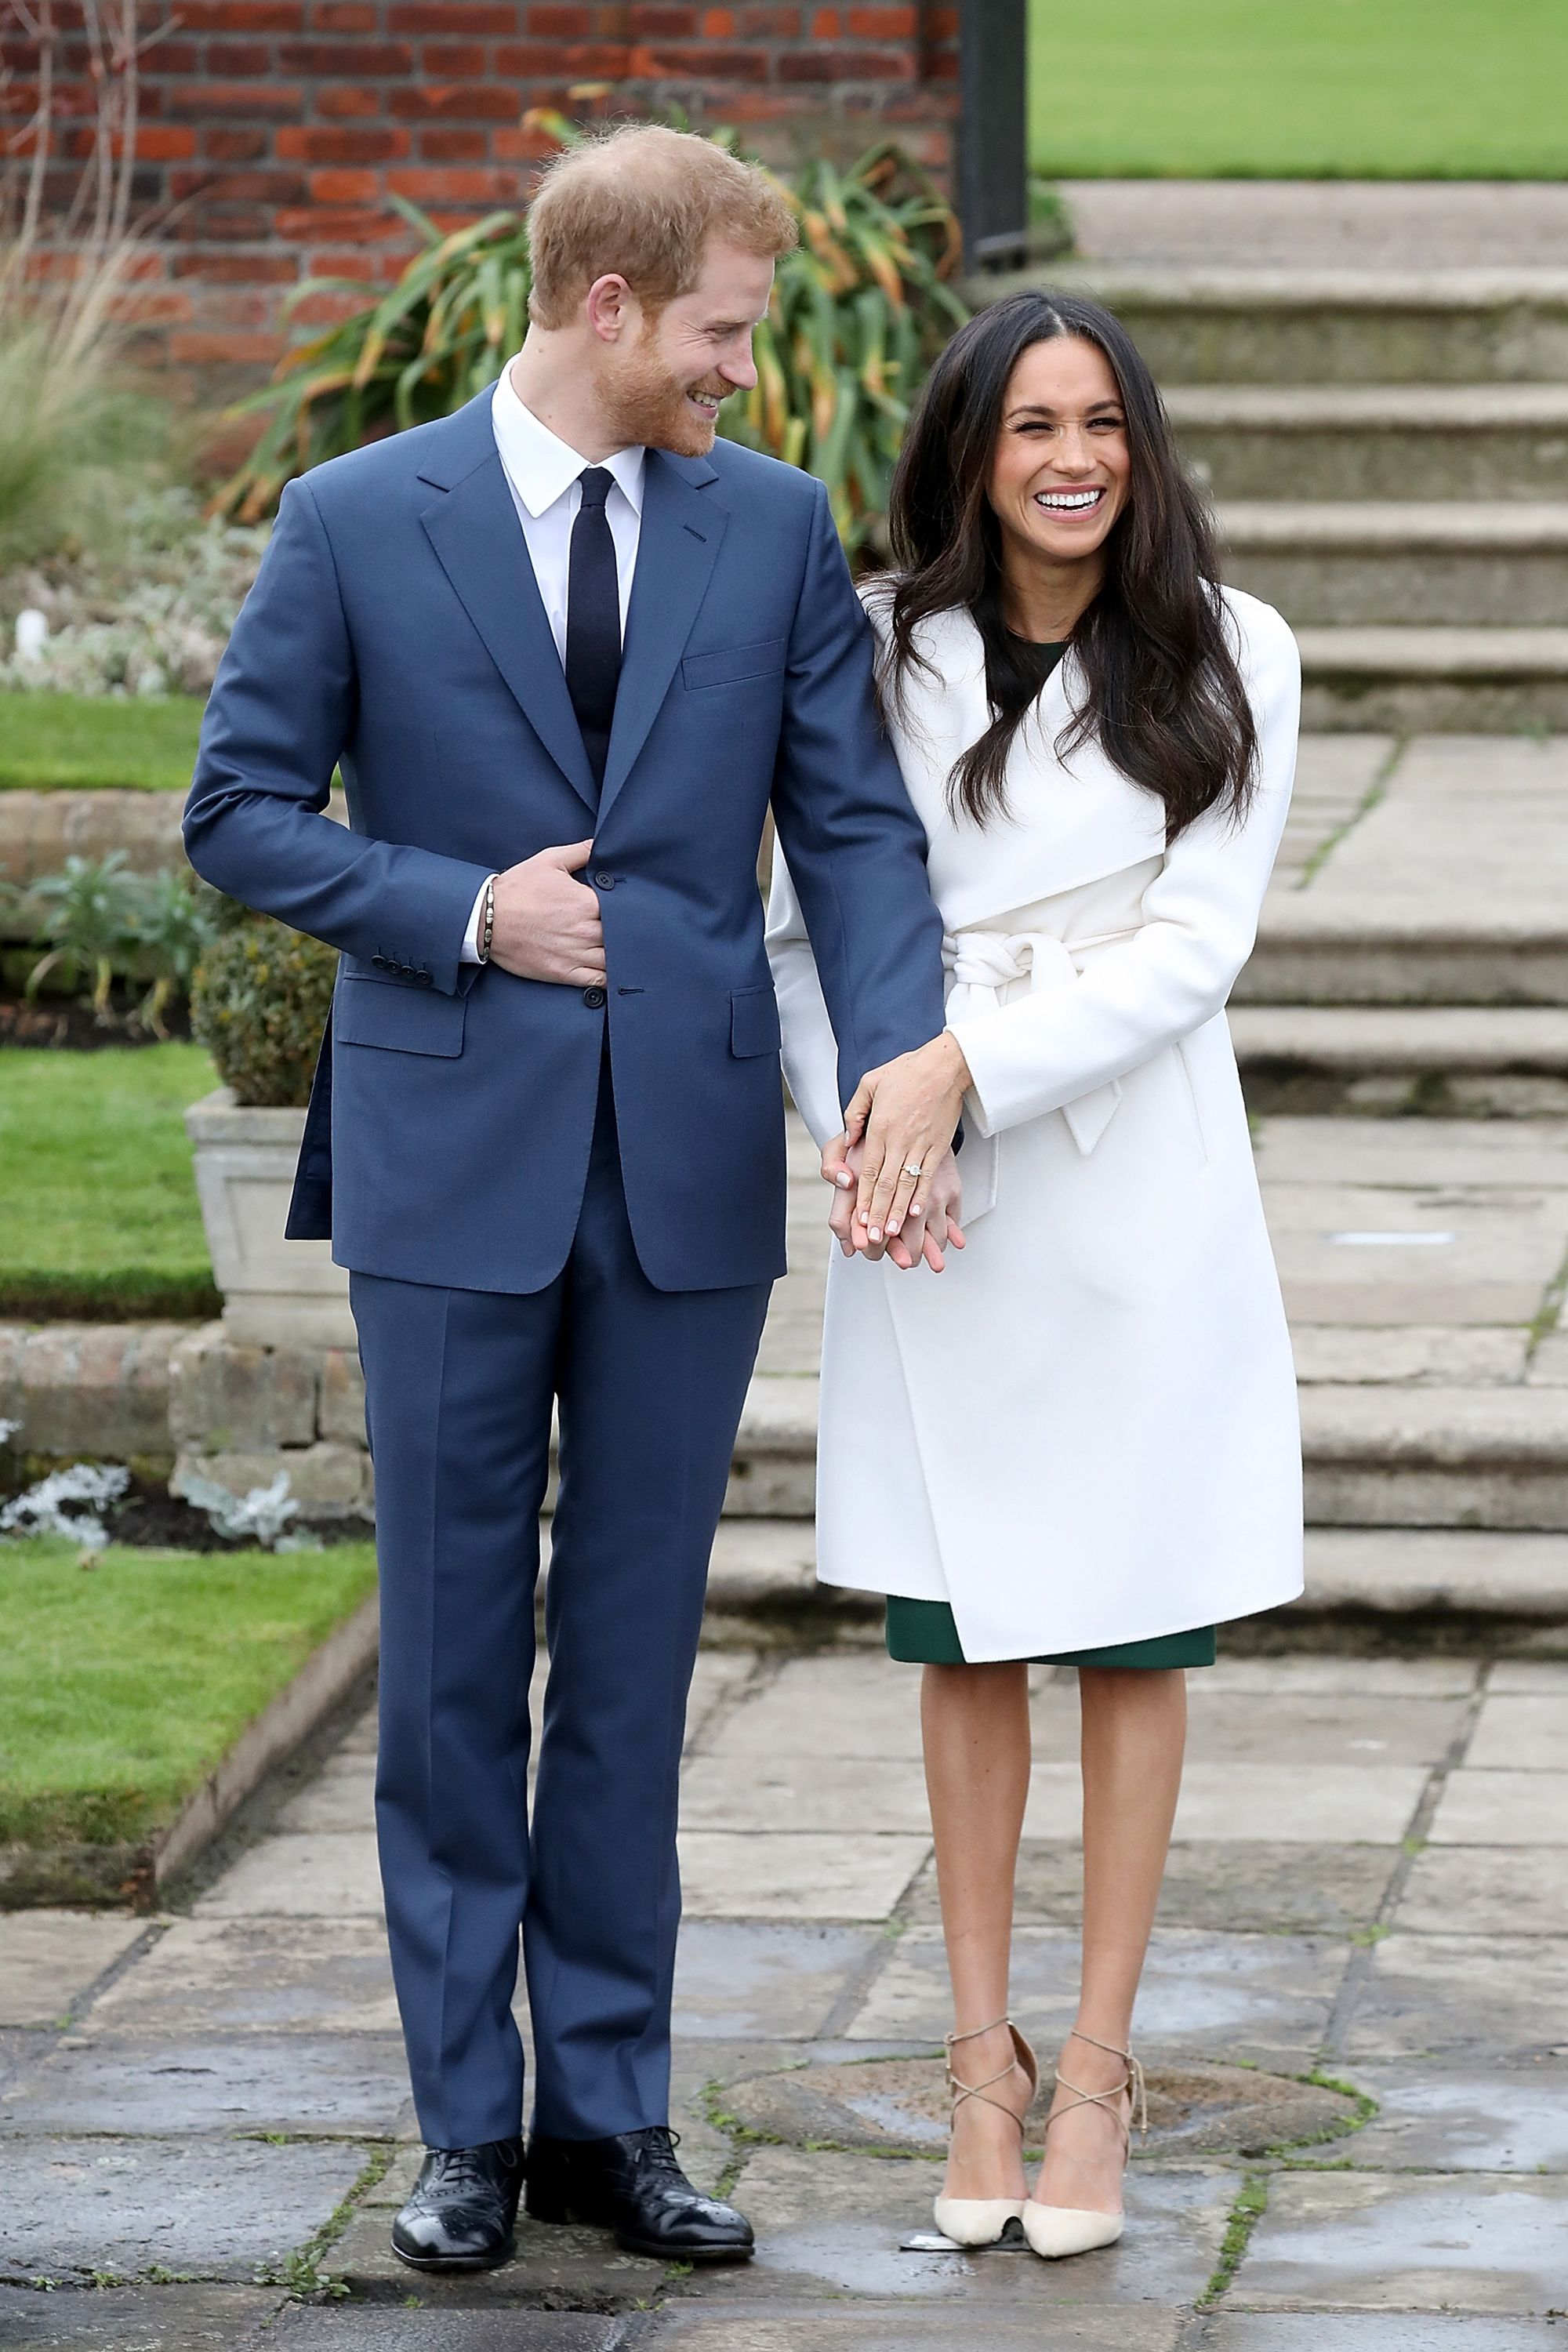 Harry and Meghan engagement photocall